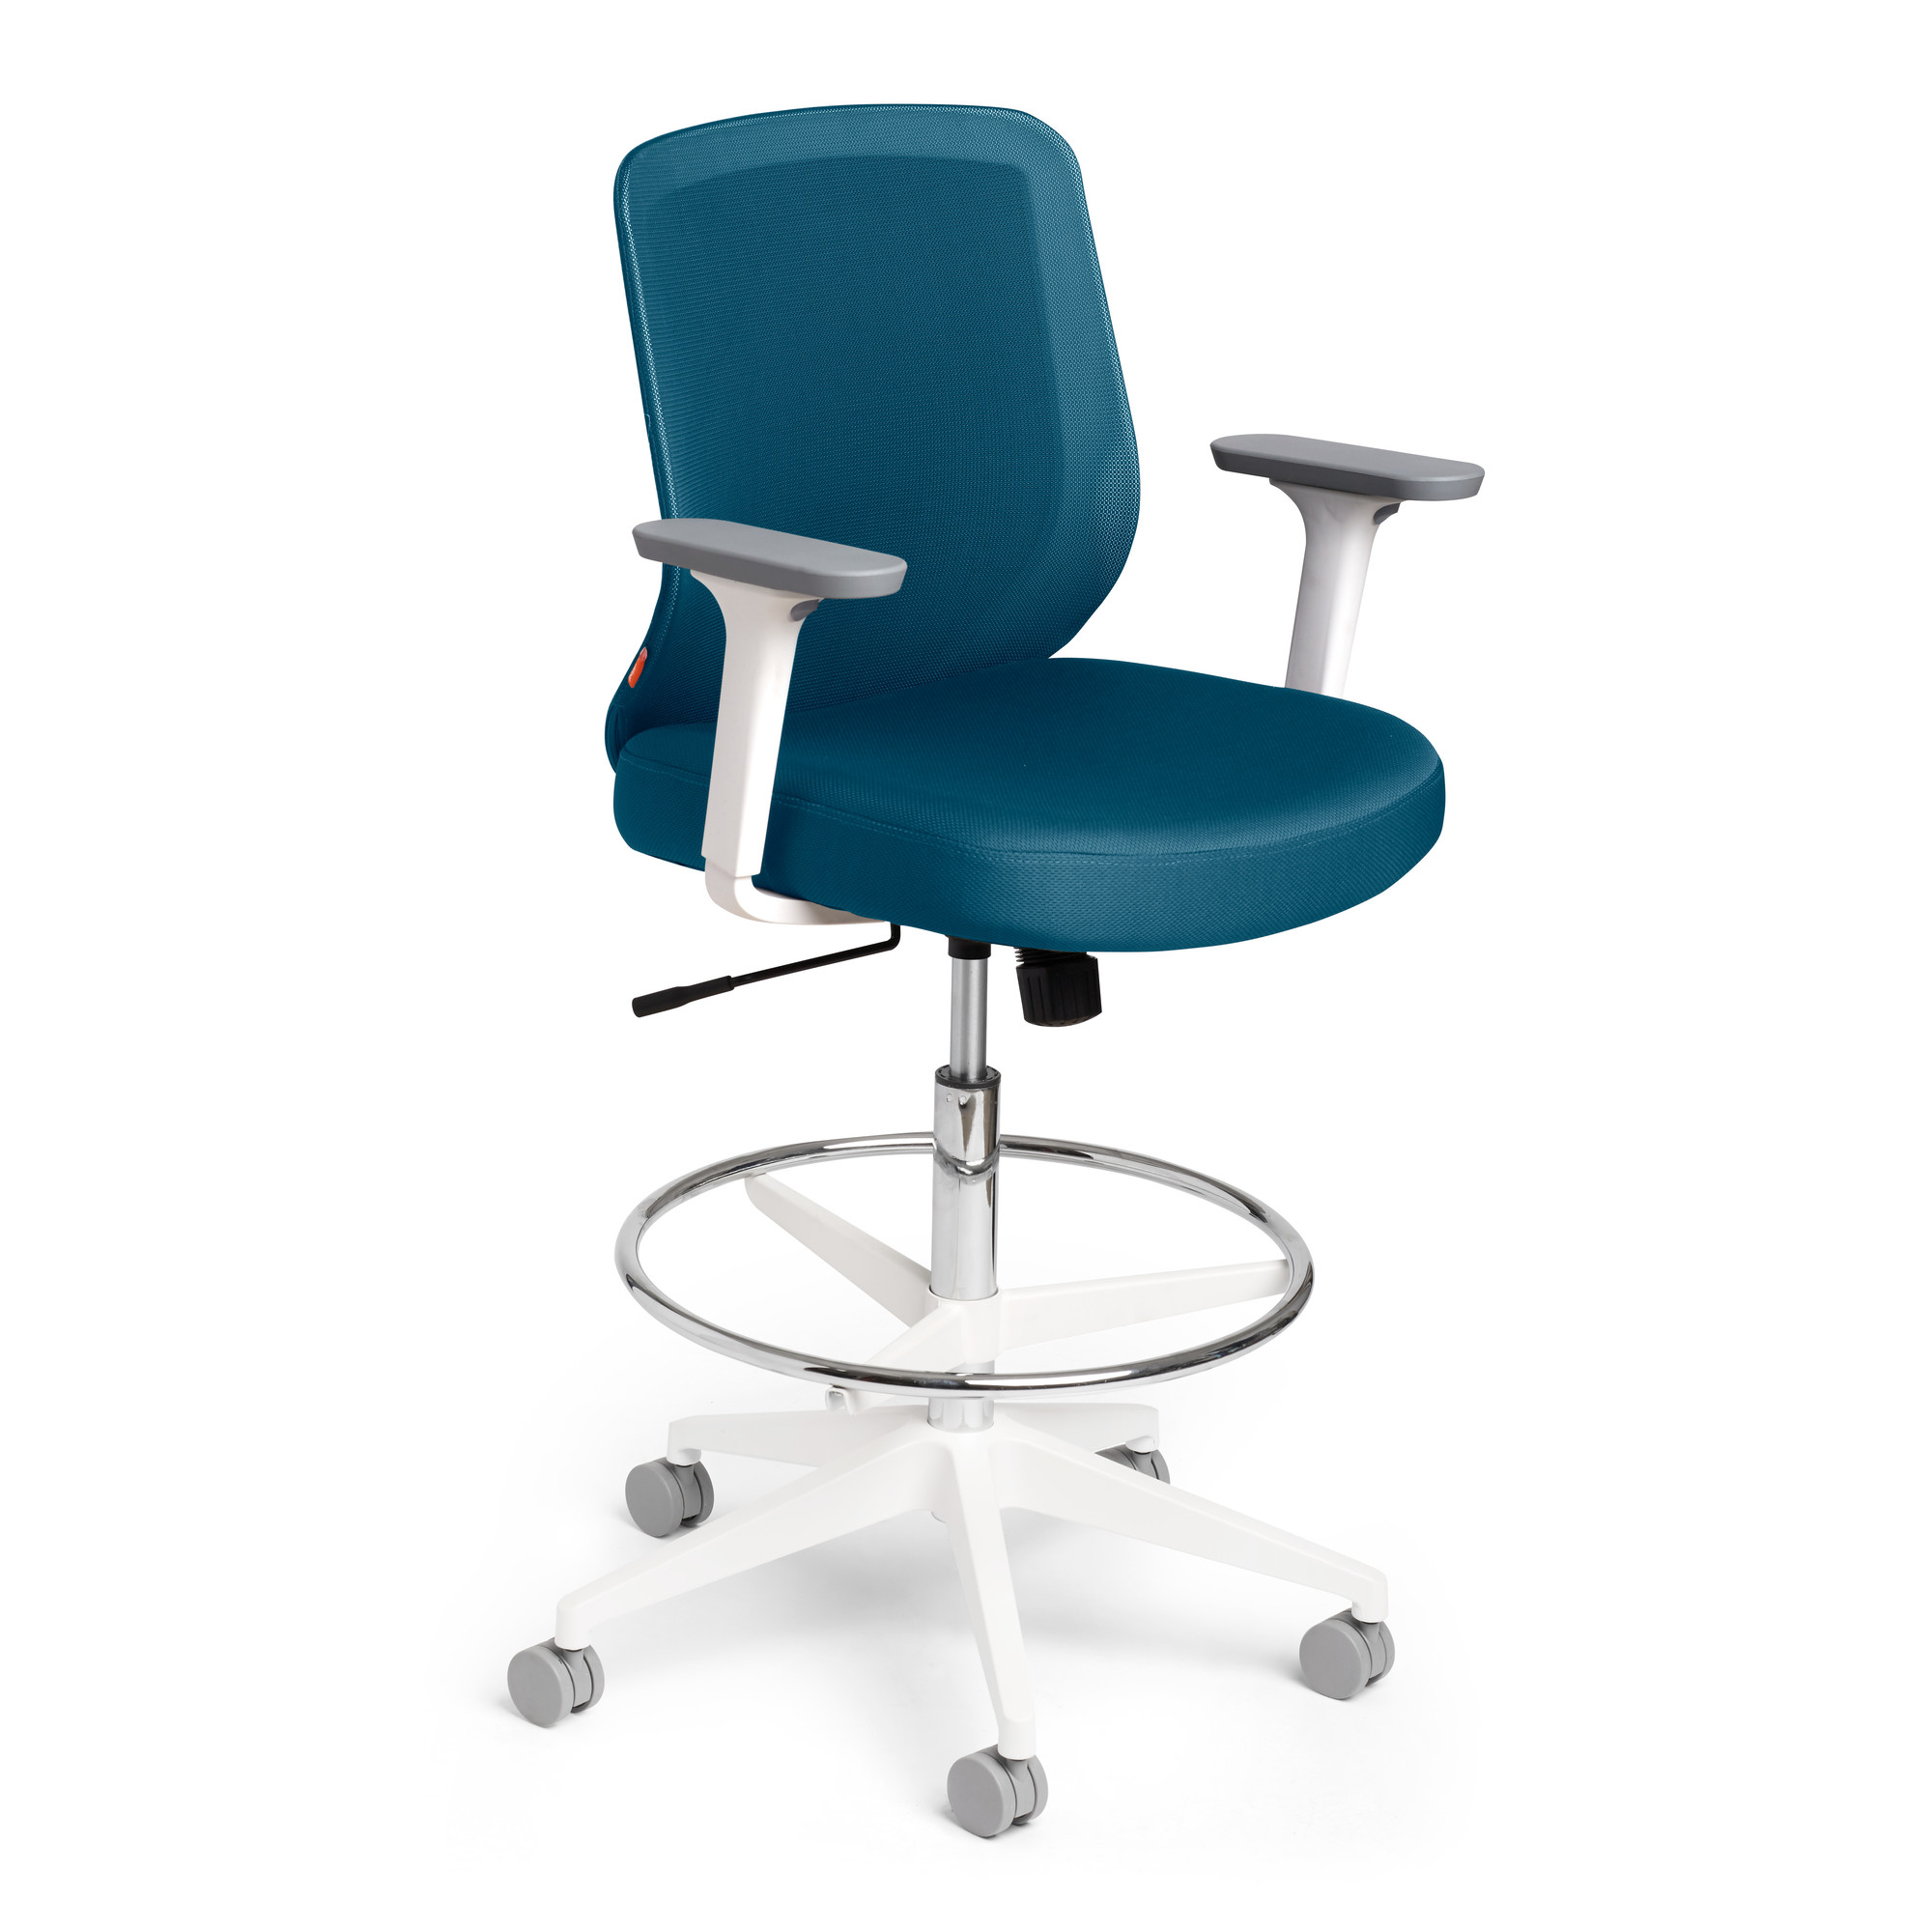 drafting office chair peir one chairs max mid back white frame modern furniture slate blue